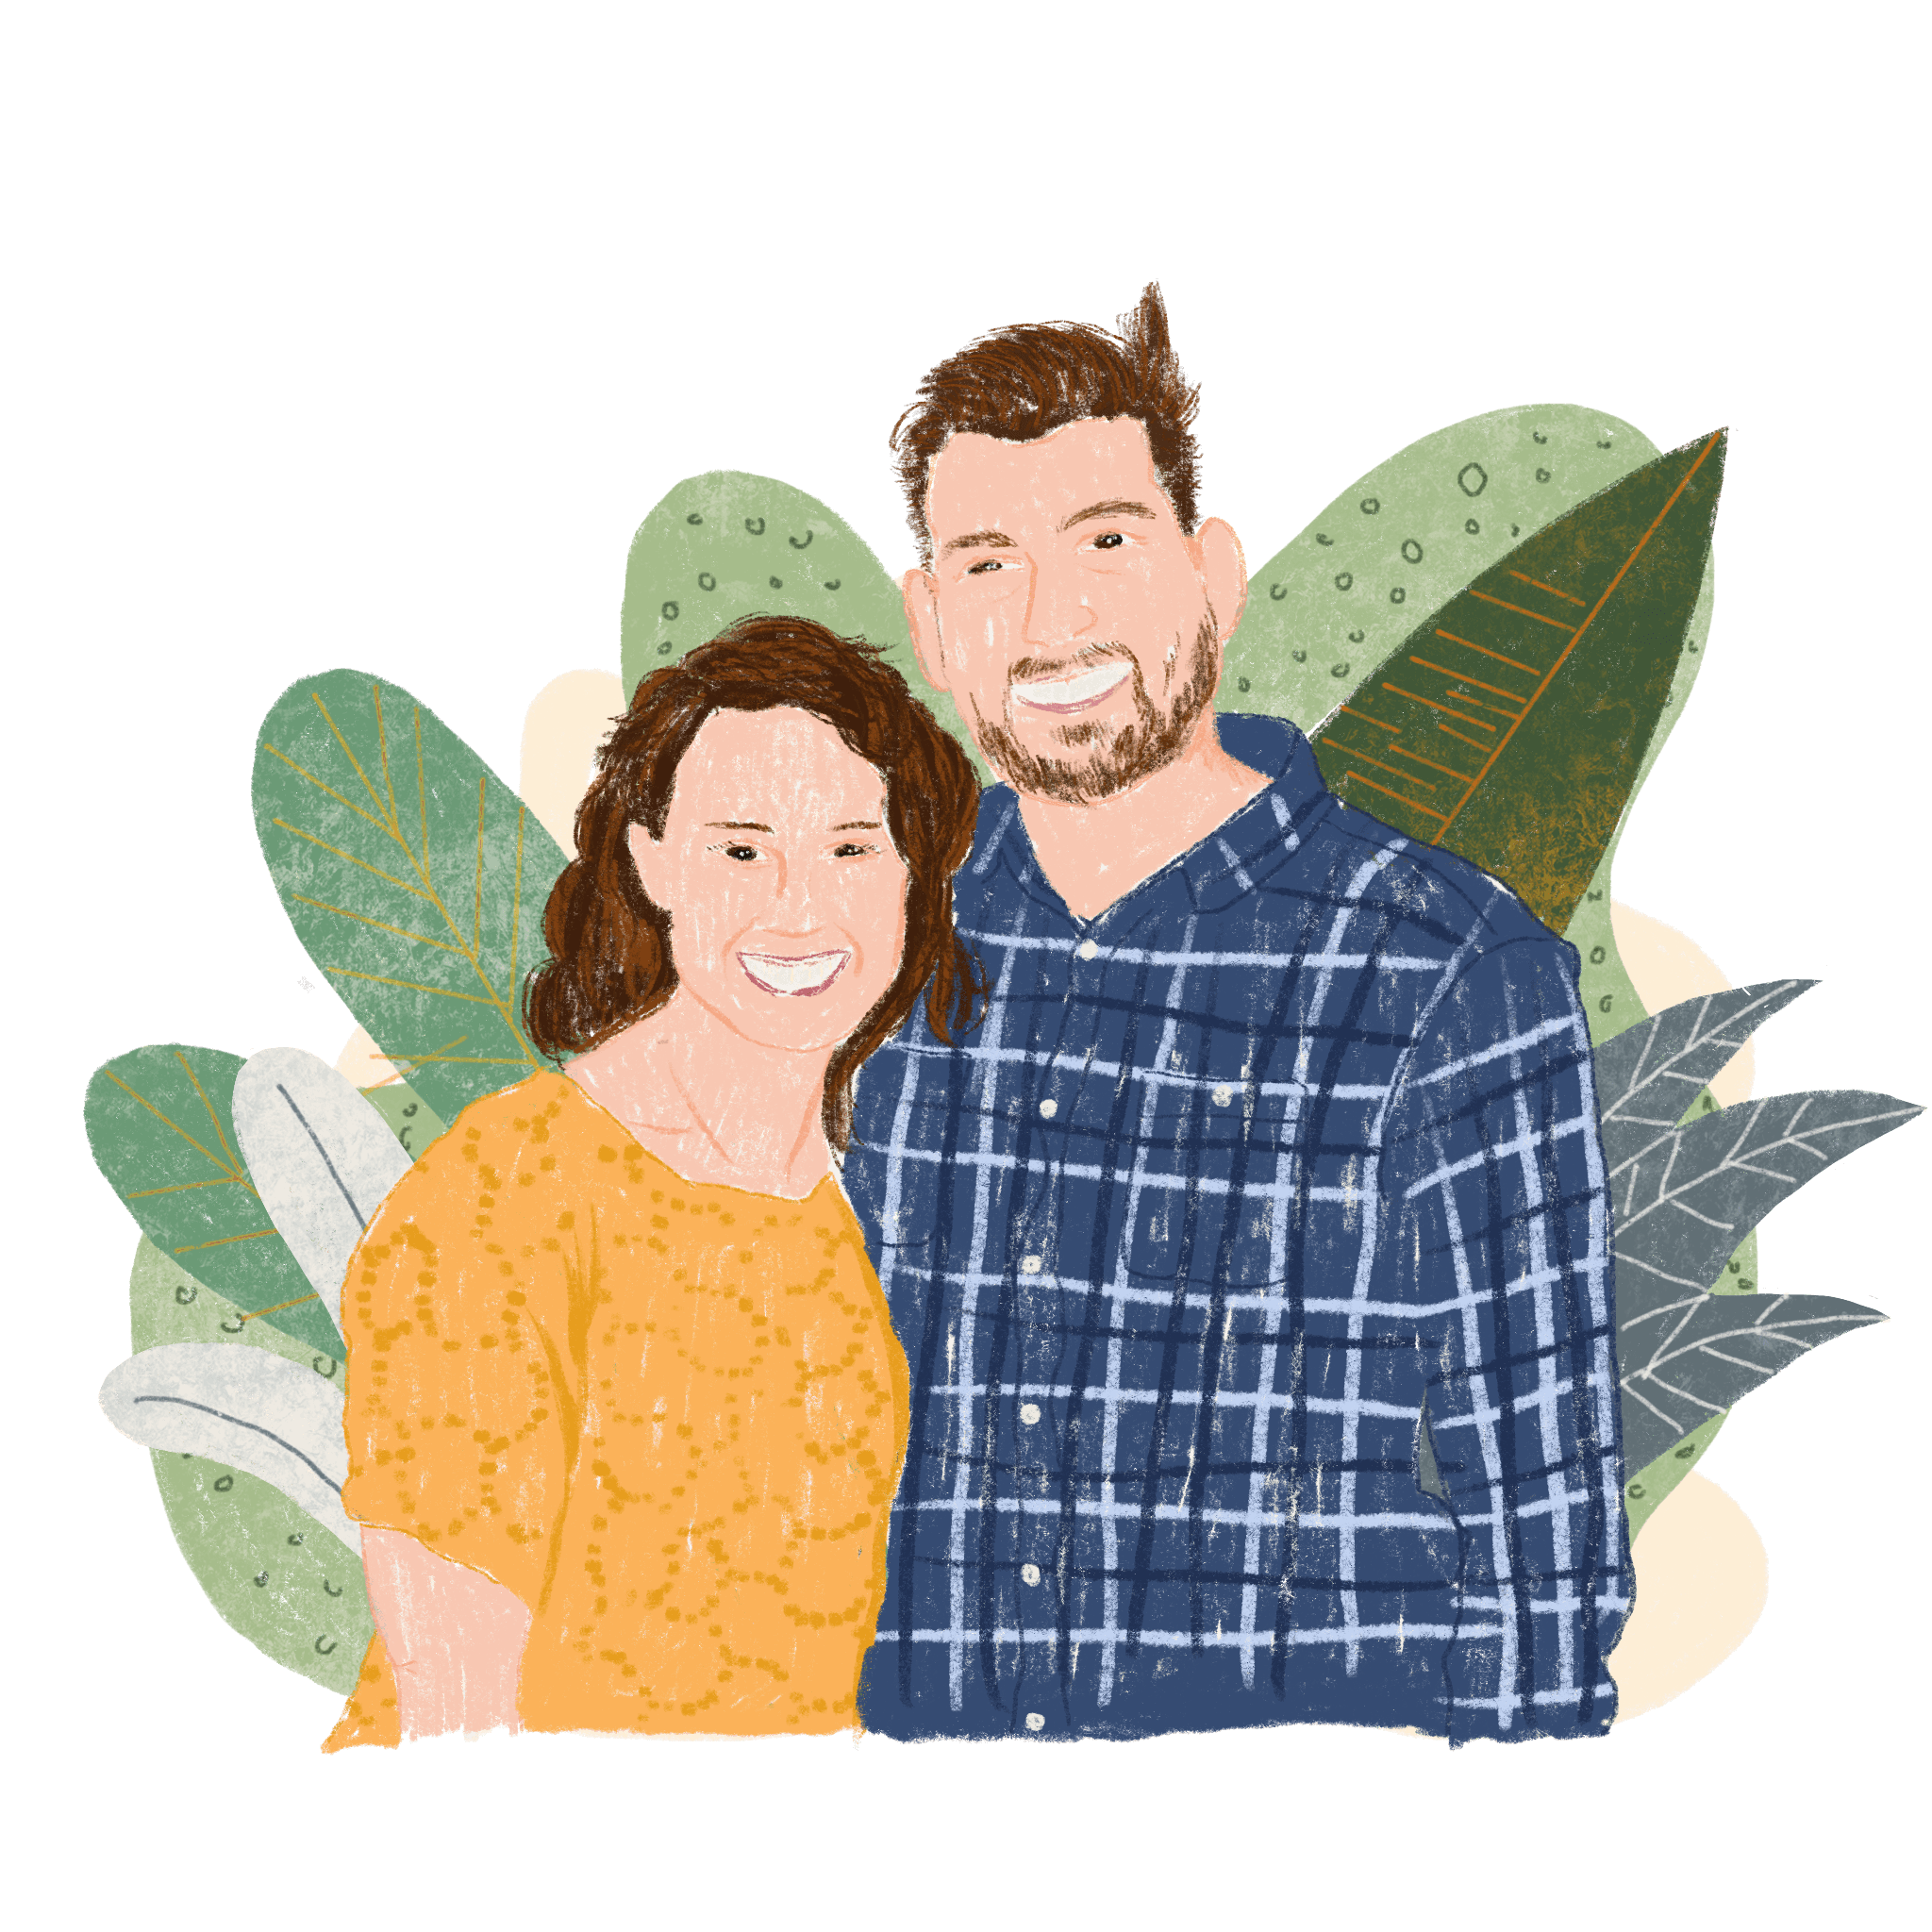 A portrait of Pastor and his wife